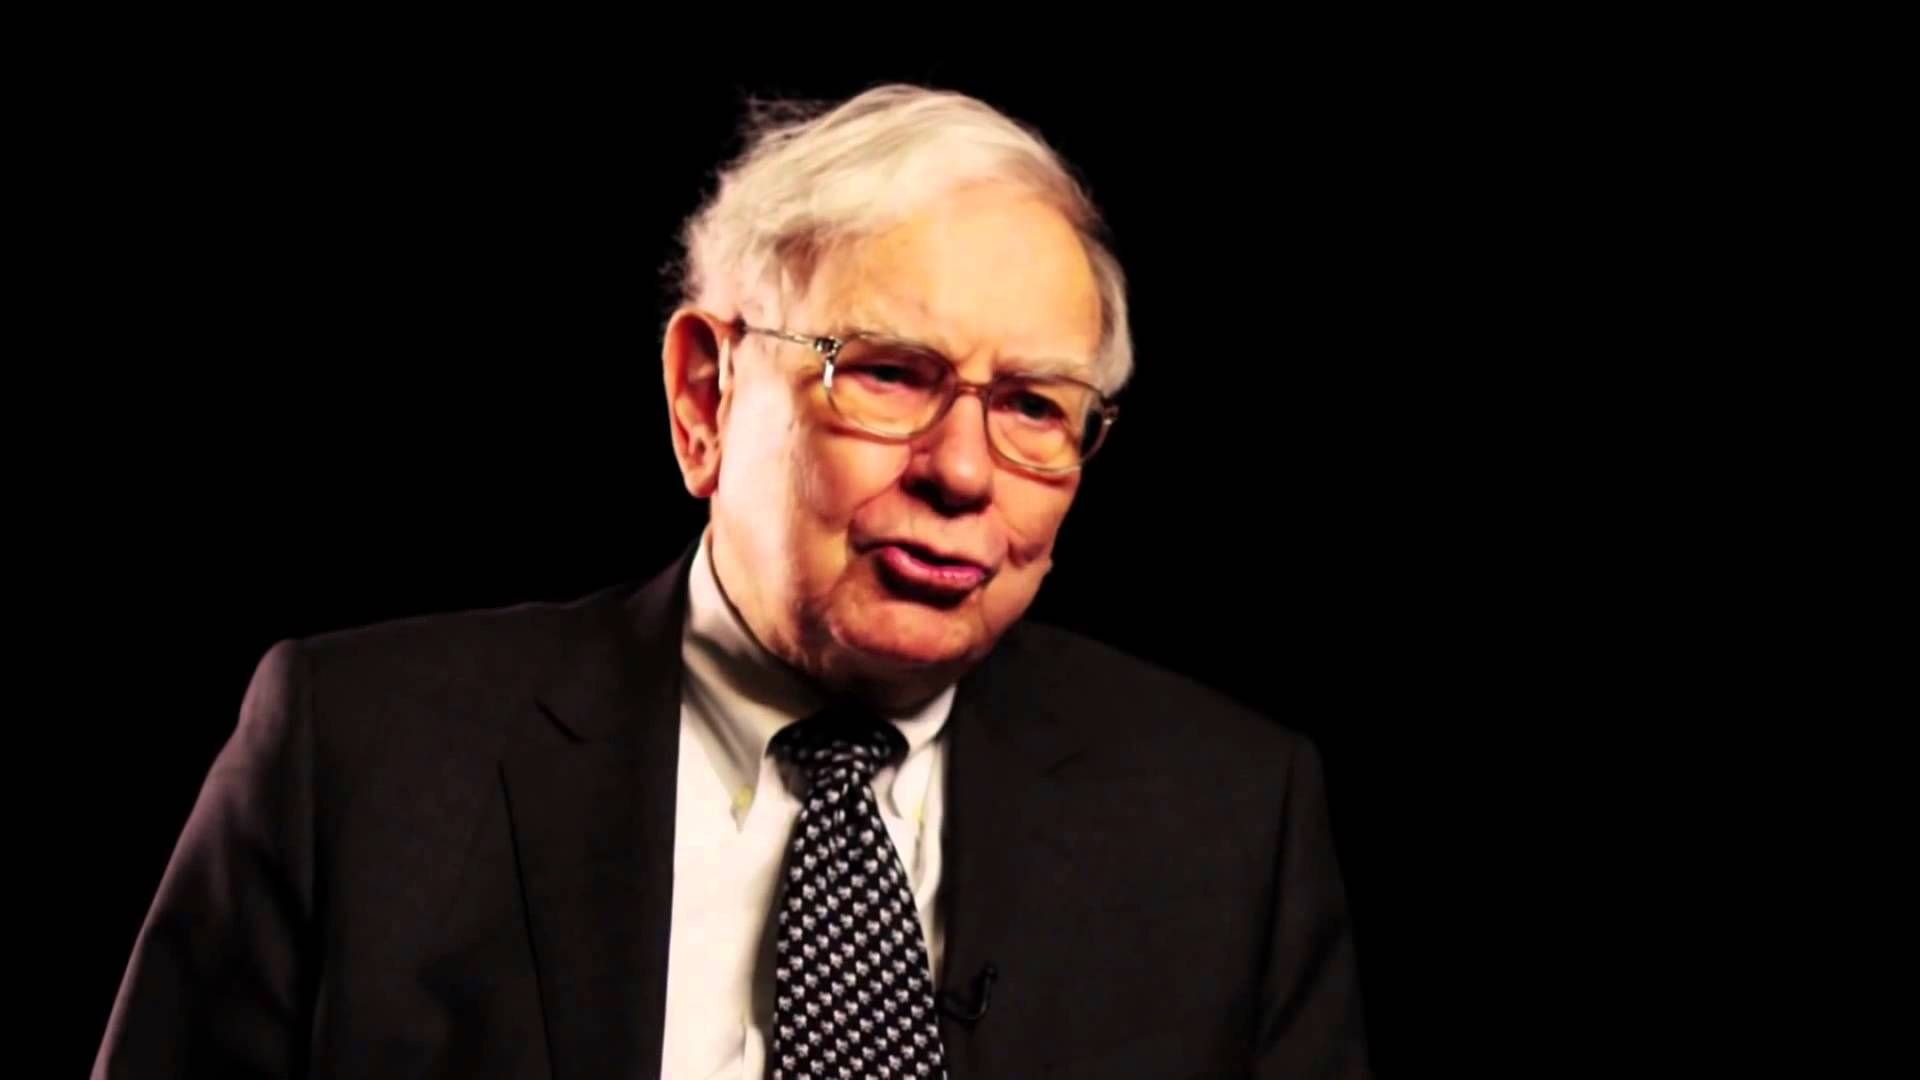 Warren Buffett Success Quotes Thoughts Images Wallpapers Pictures Photos Warren Buffett Image Quotes Dividend Investing